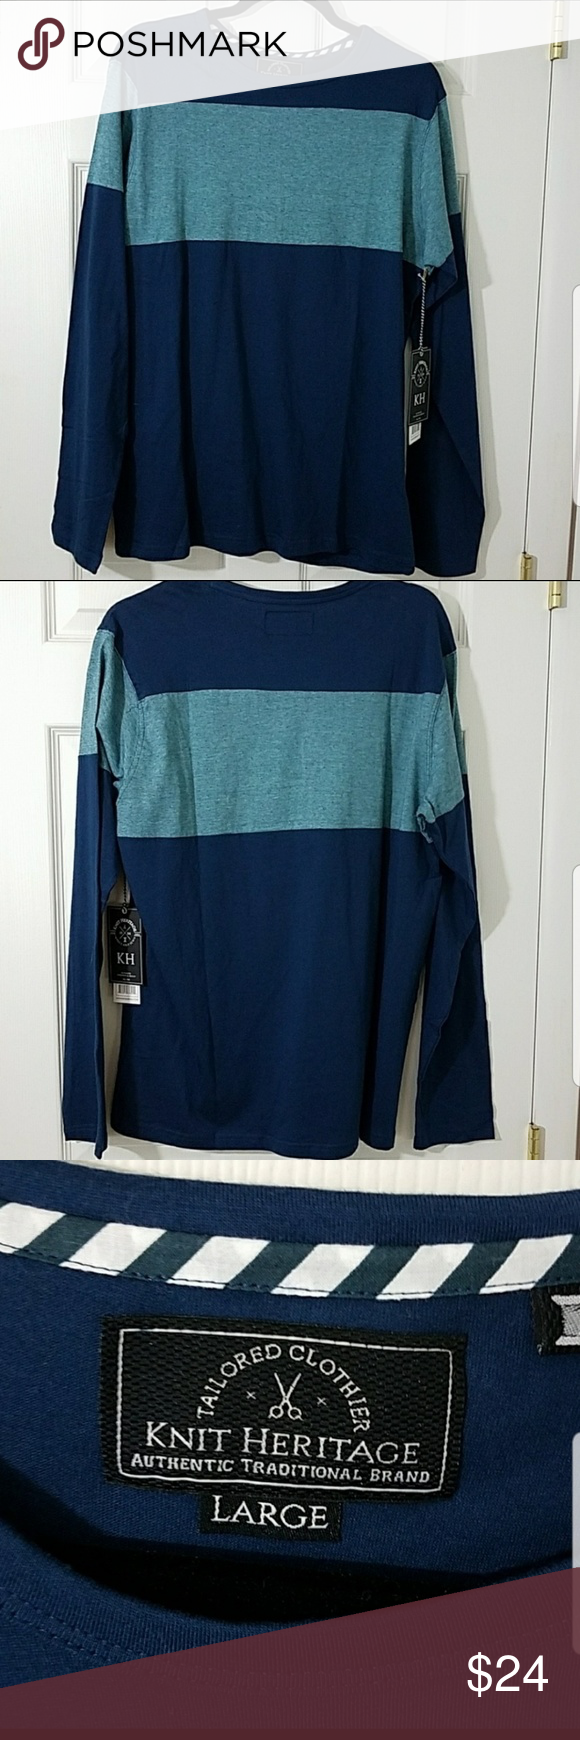 Men's Knit Heritage Tailored Clothier Sweater